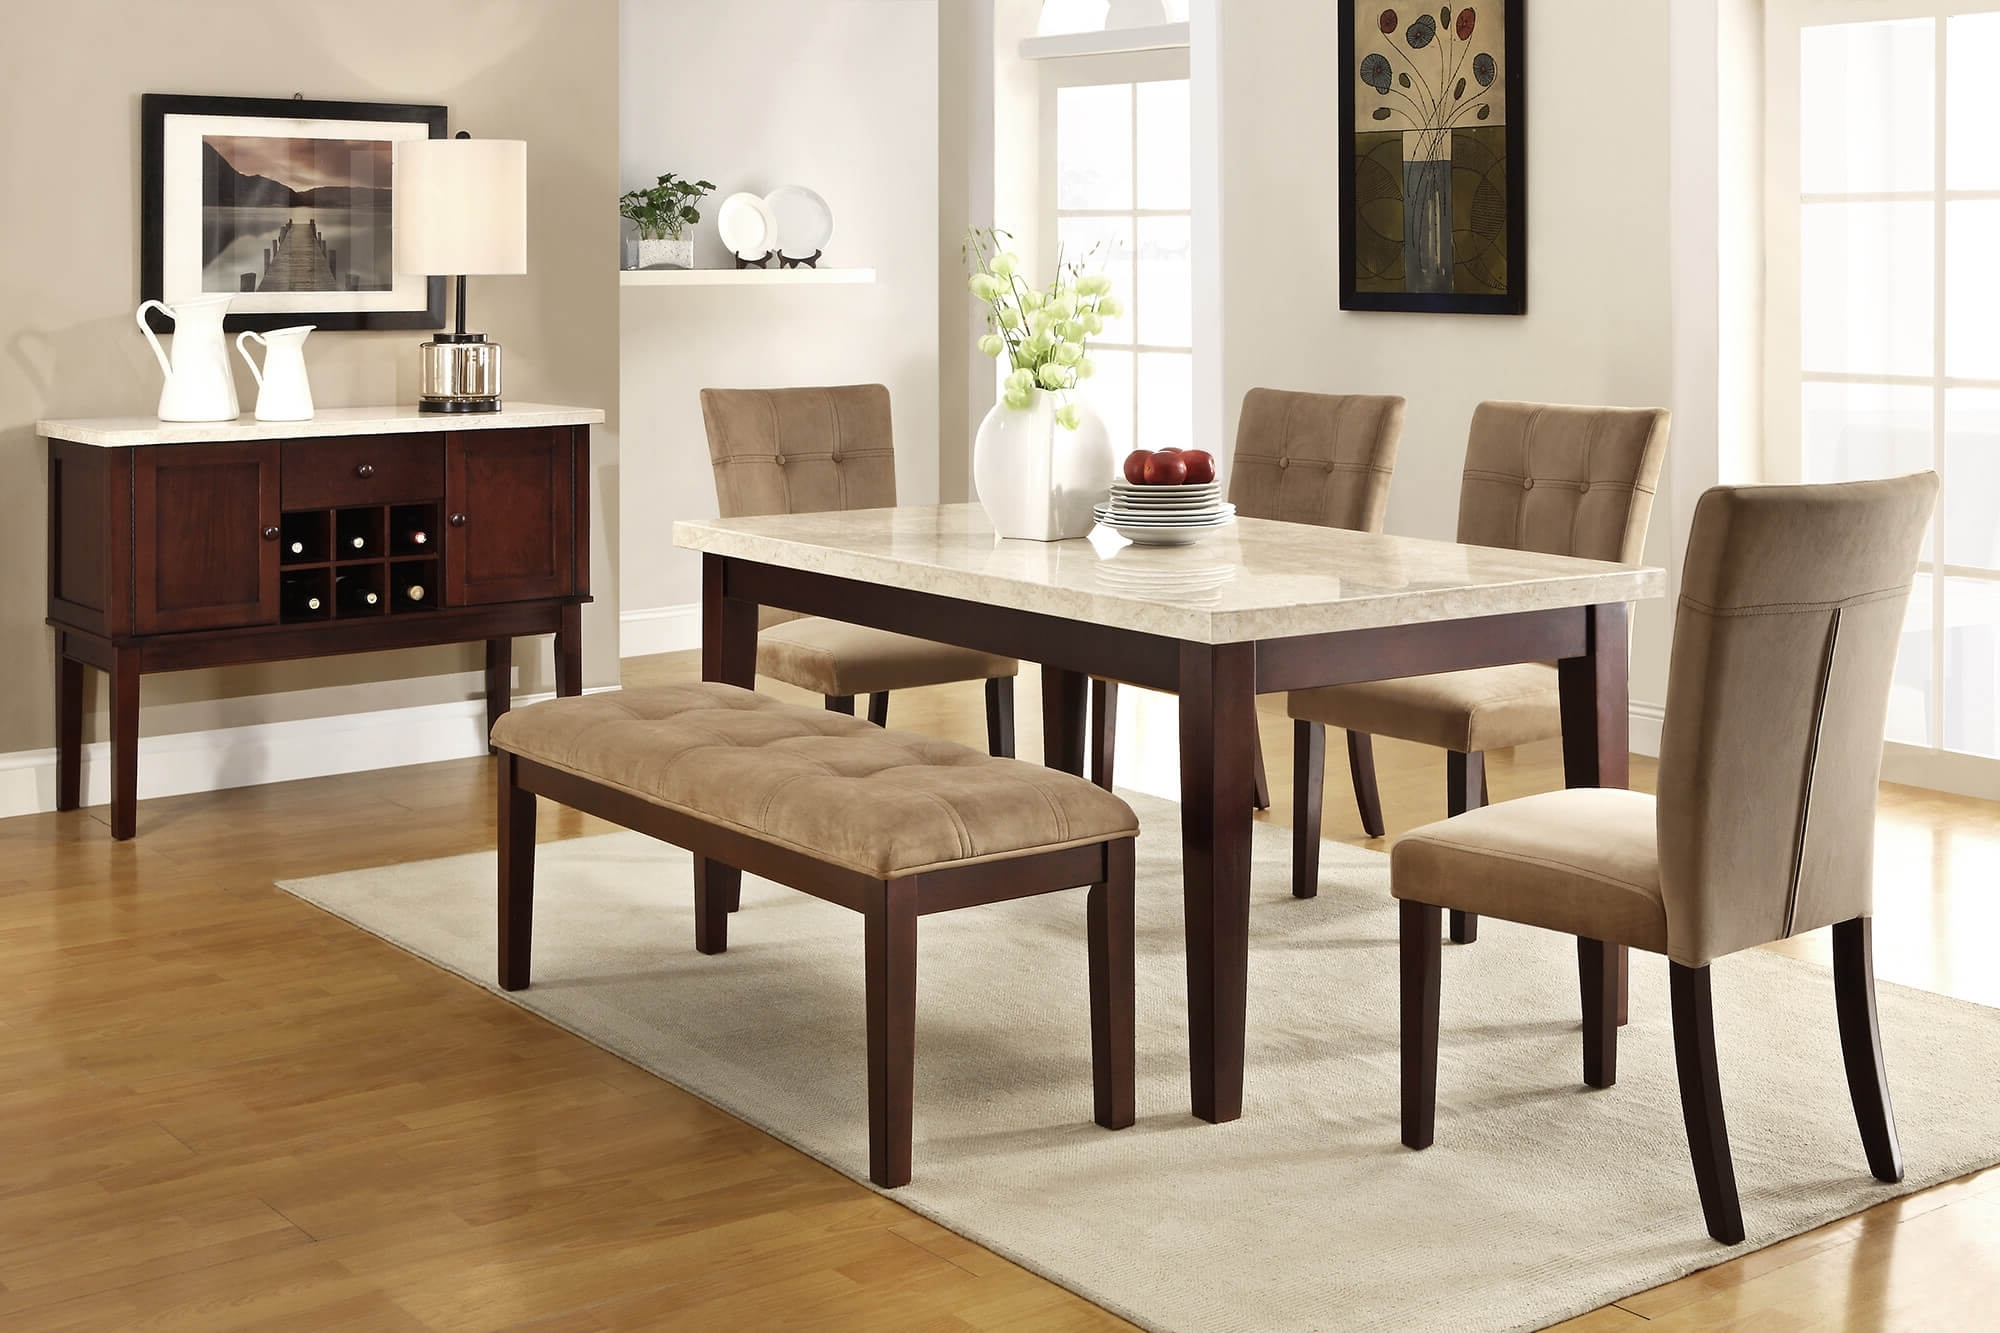 26 Dining Room Sets (Big And Small) With Bench Seating (2018) pertaining to Most Popular Cheap Dining Tables Sets